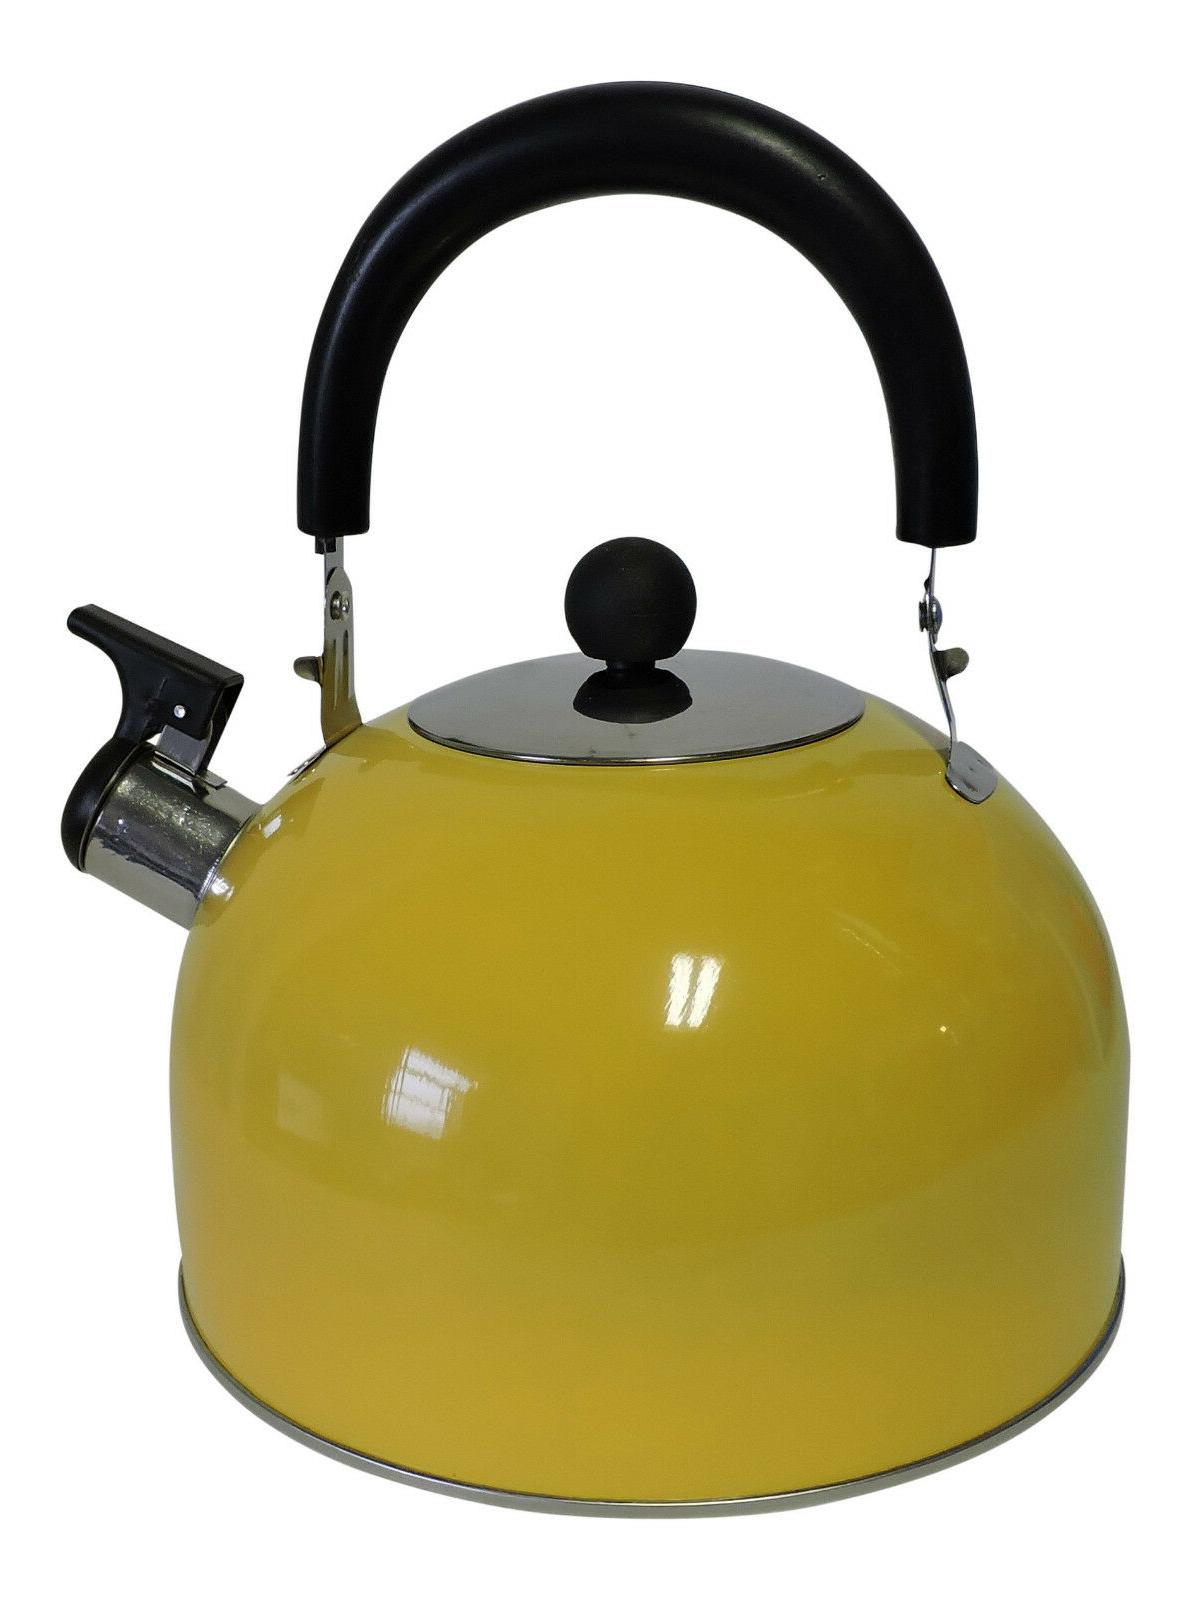 Stainless Steel Whistling Kettle Hot Water Tea Stovetop Yell